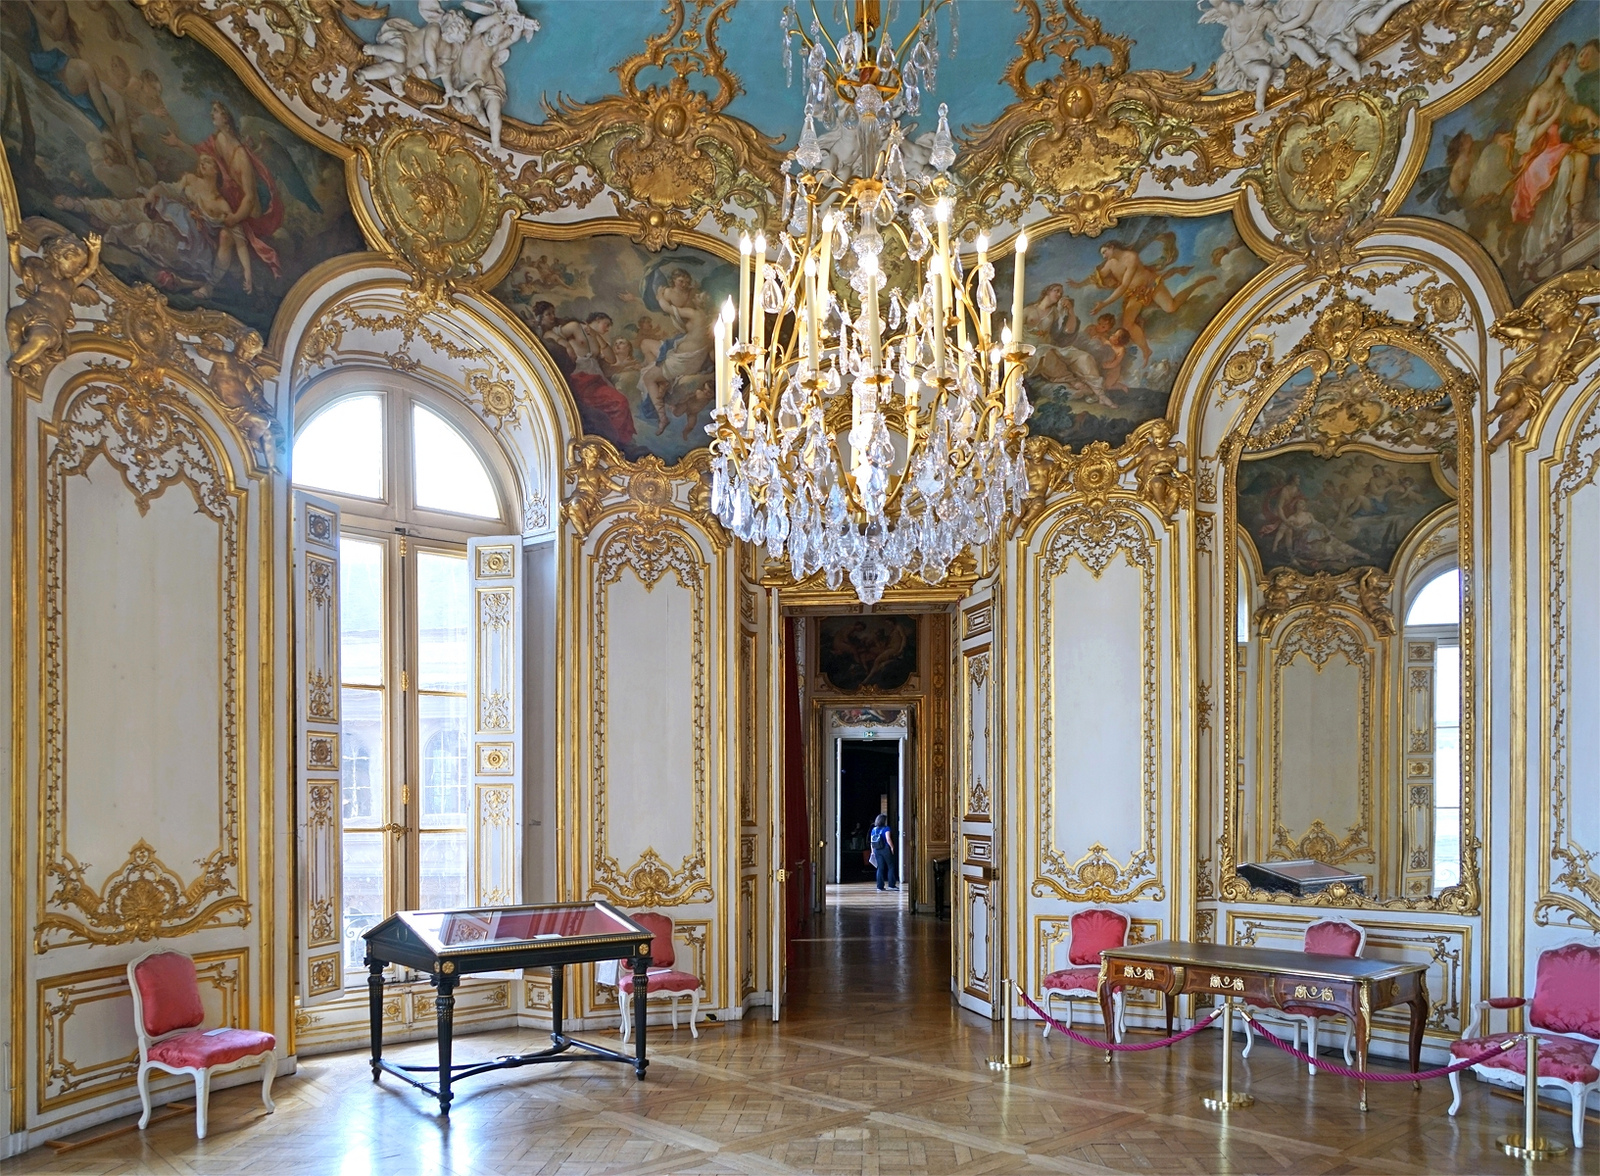 Rococo The Height Of French Flamboyancy